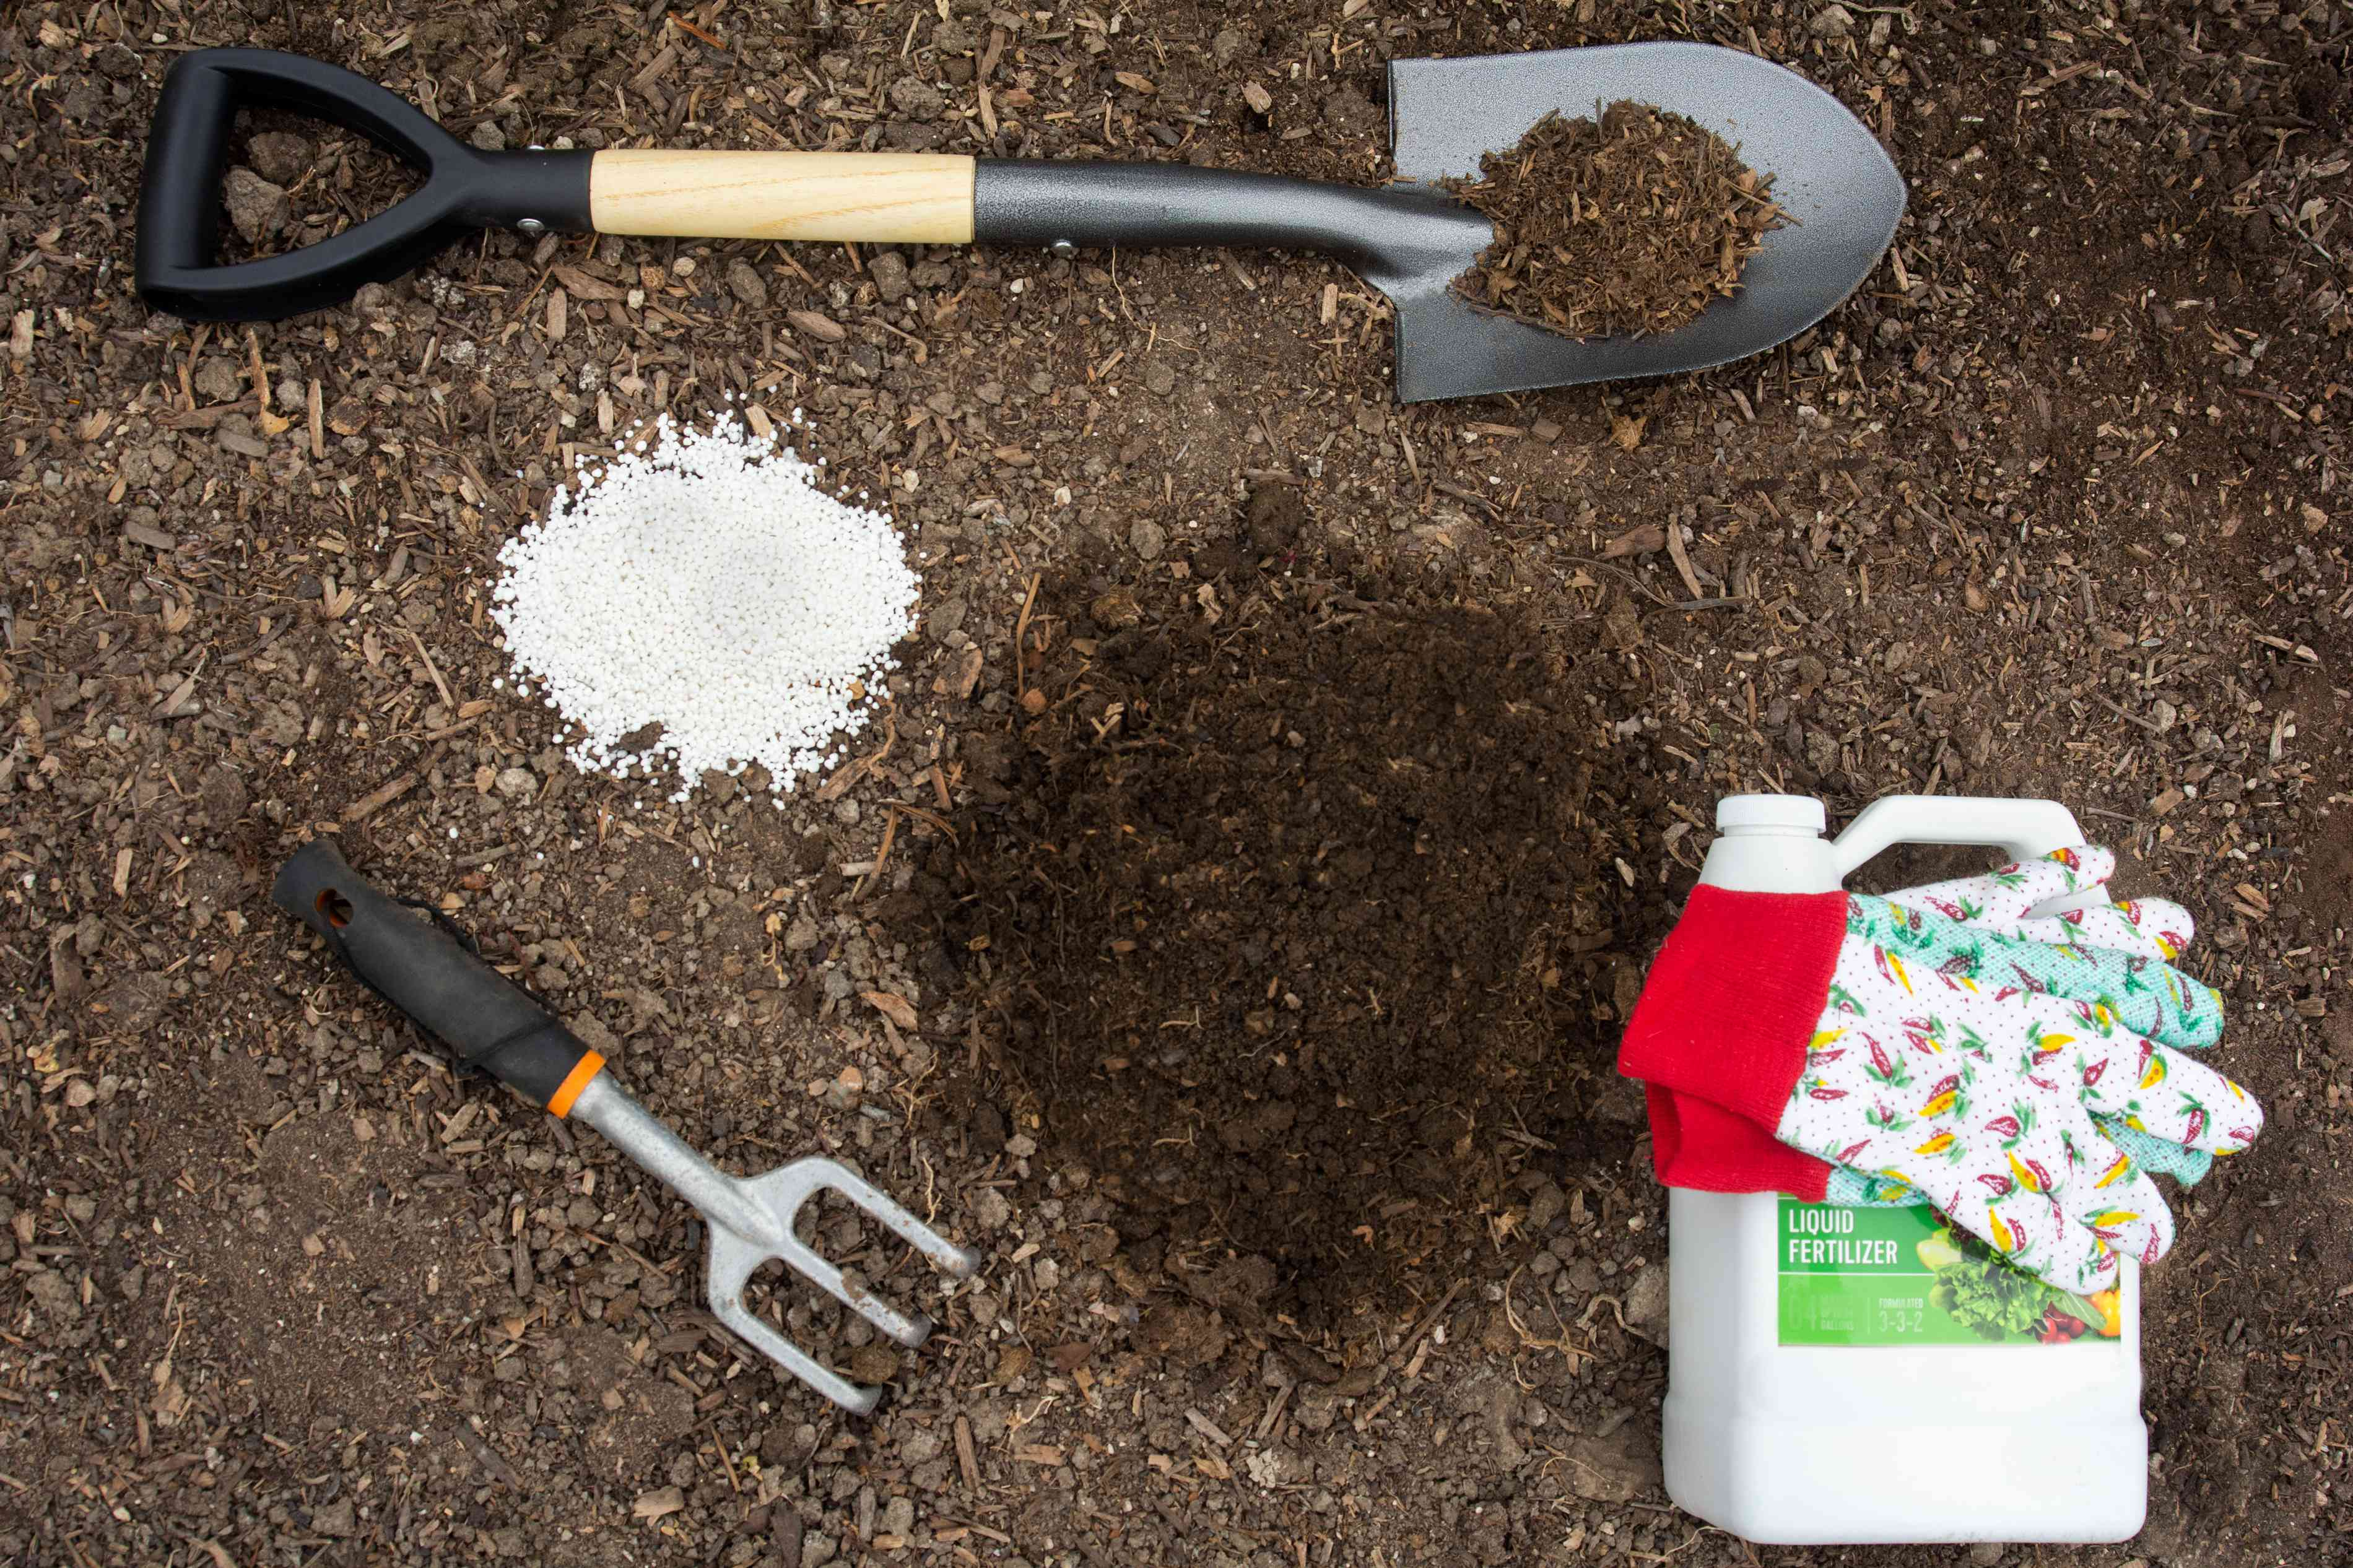 Materials and tools to improve garden soil with amendments